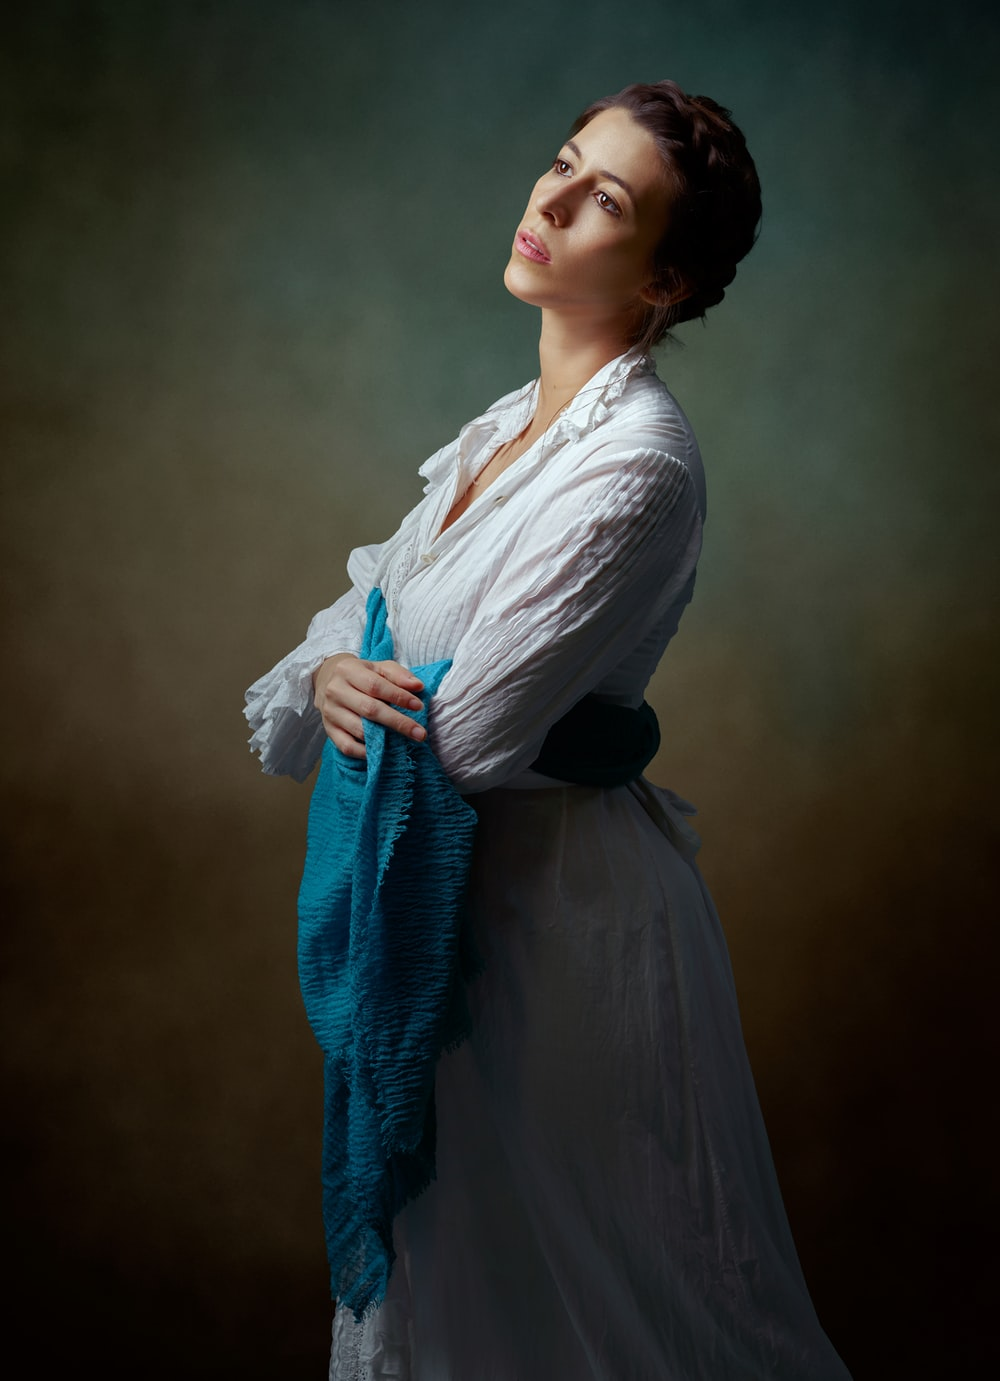 woman in white long sleeve shirt and blue scarf